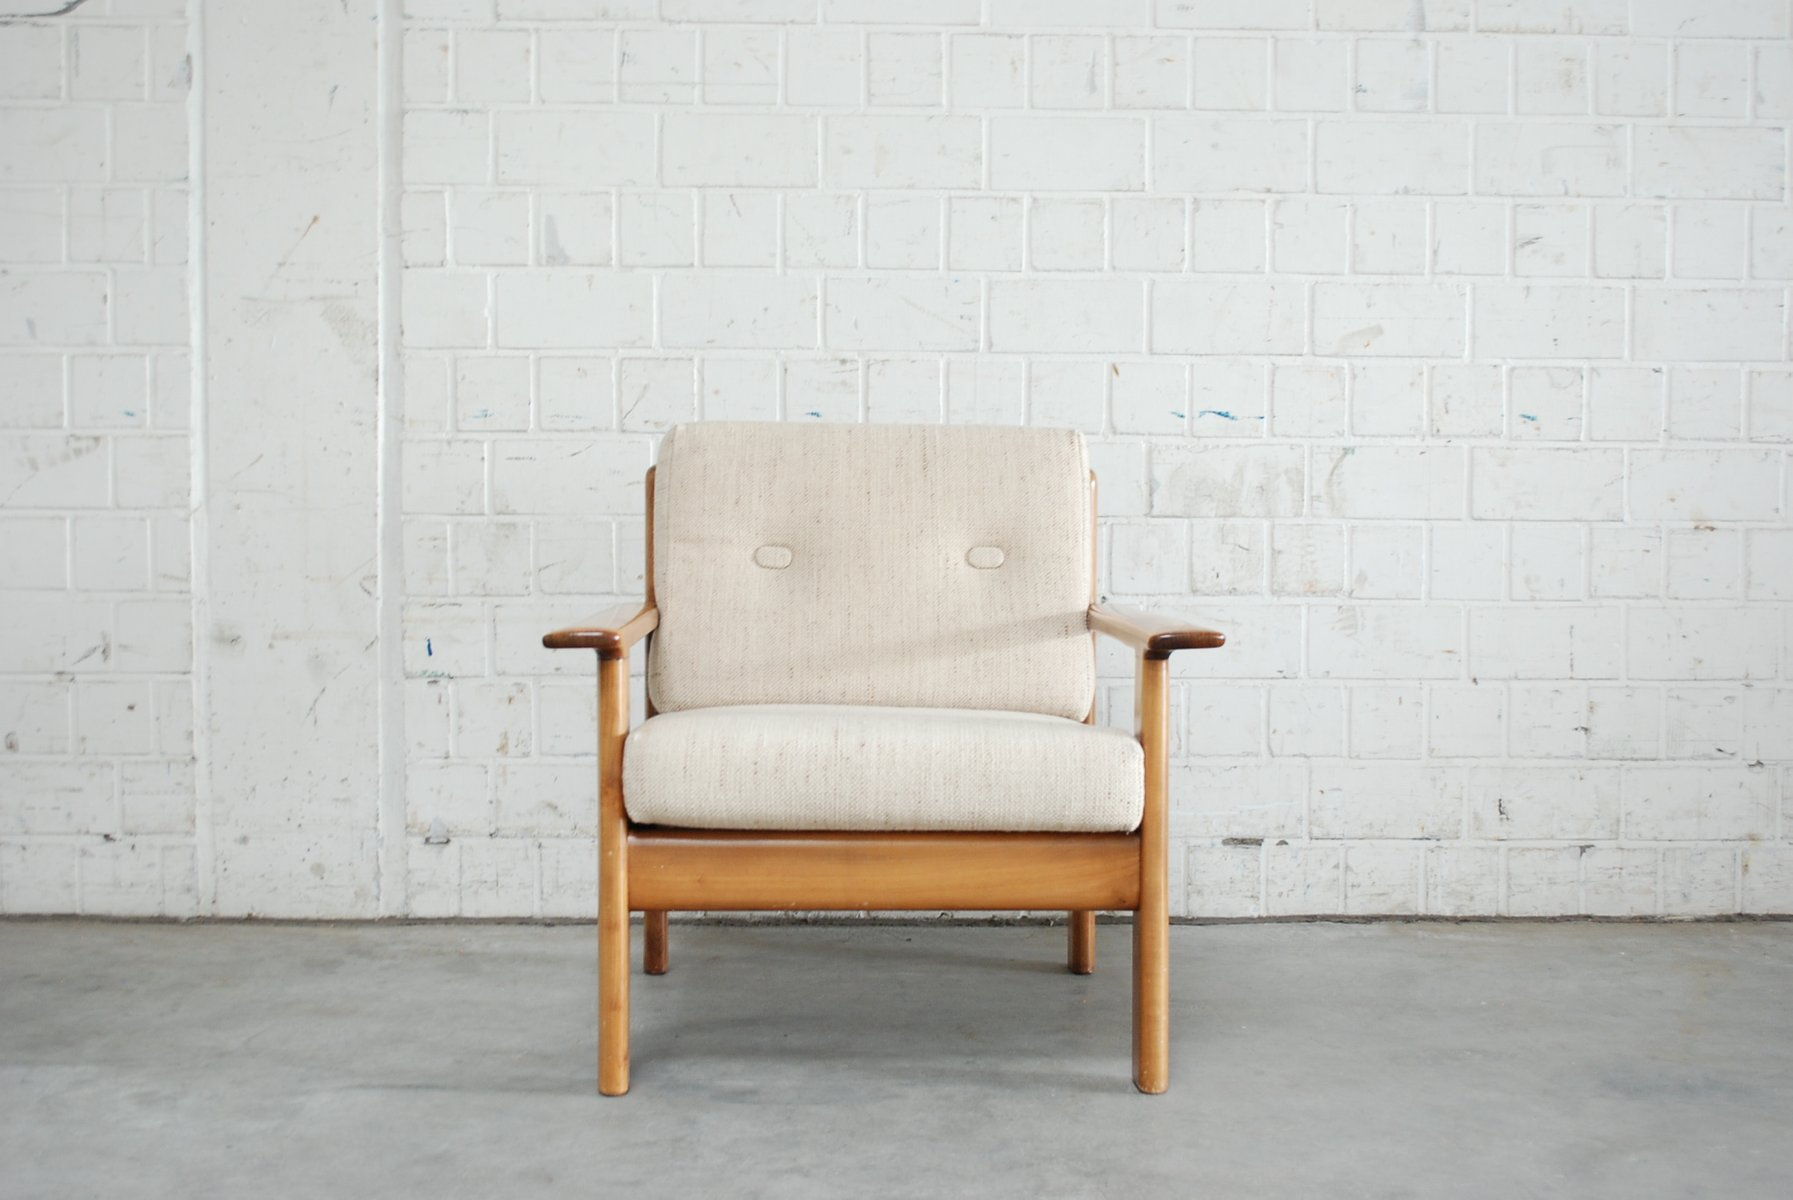 Vintage Cherrywood Chair From Knoll For Sale At Pamono